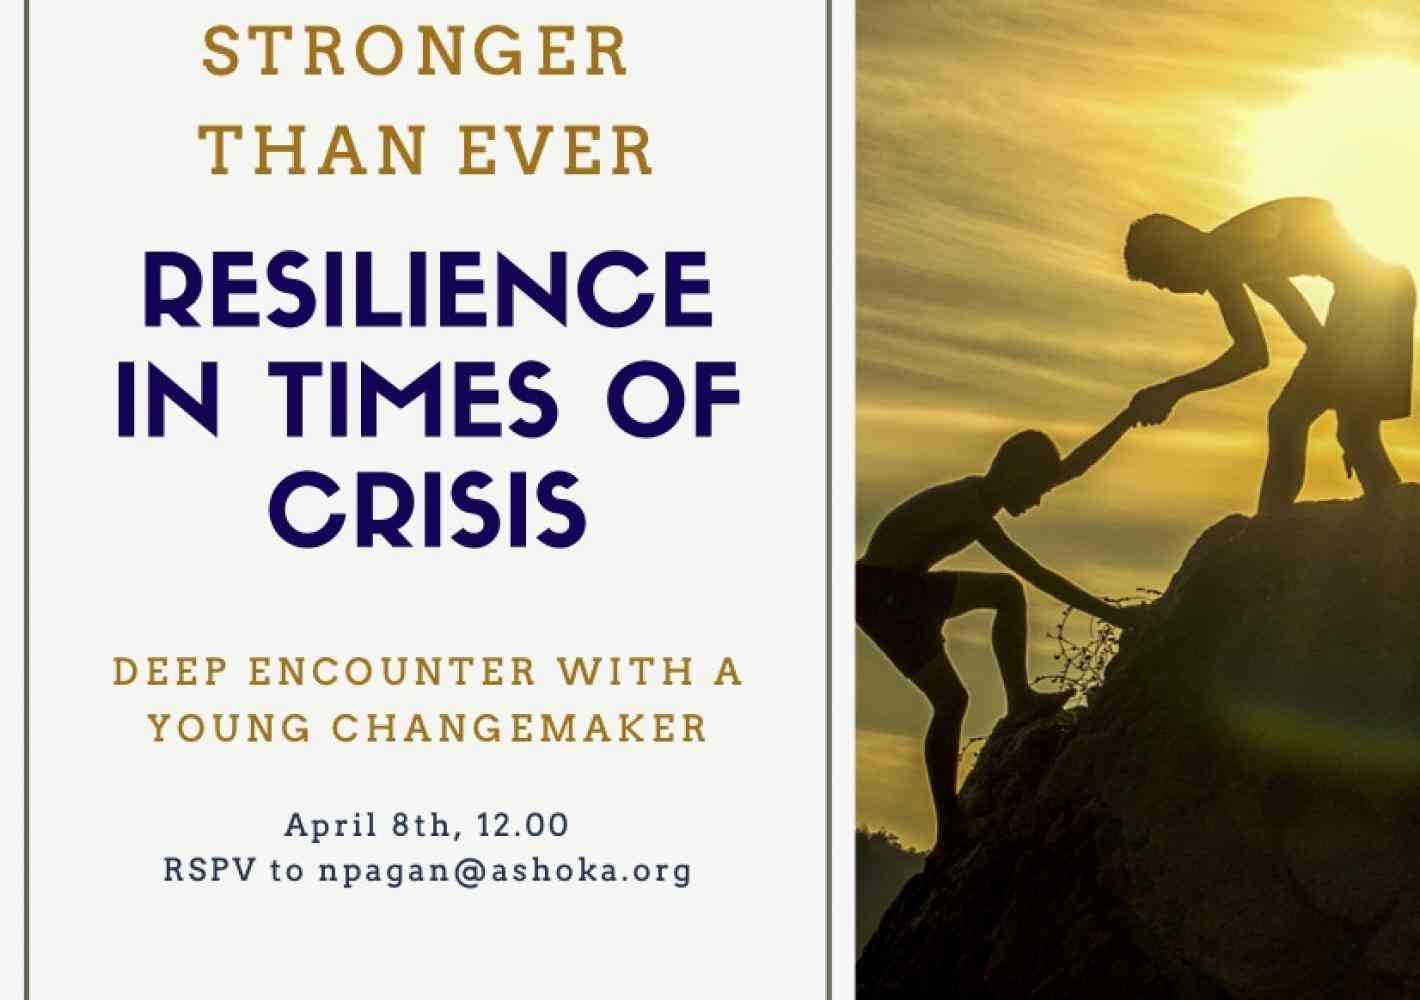 Resilience in times of crisis